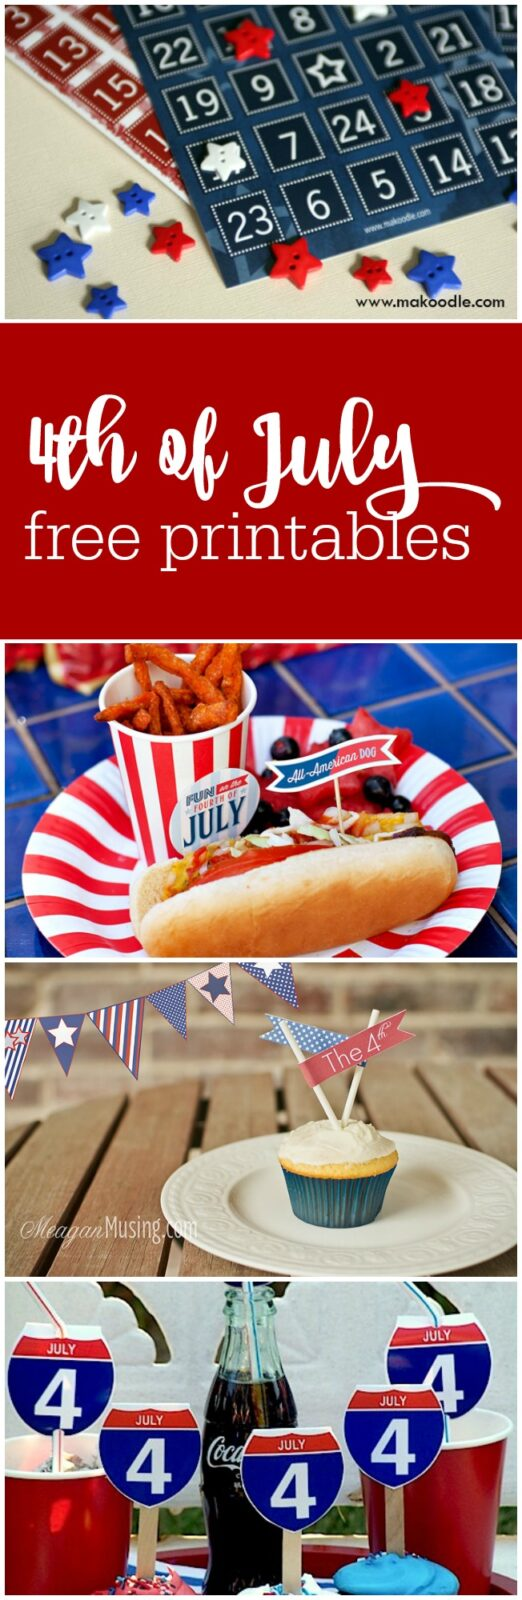 Free printables for the 4th of July curated by The Party Teacher